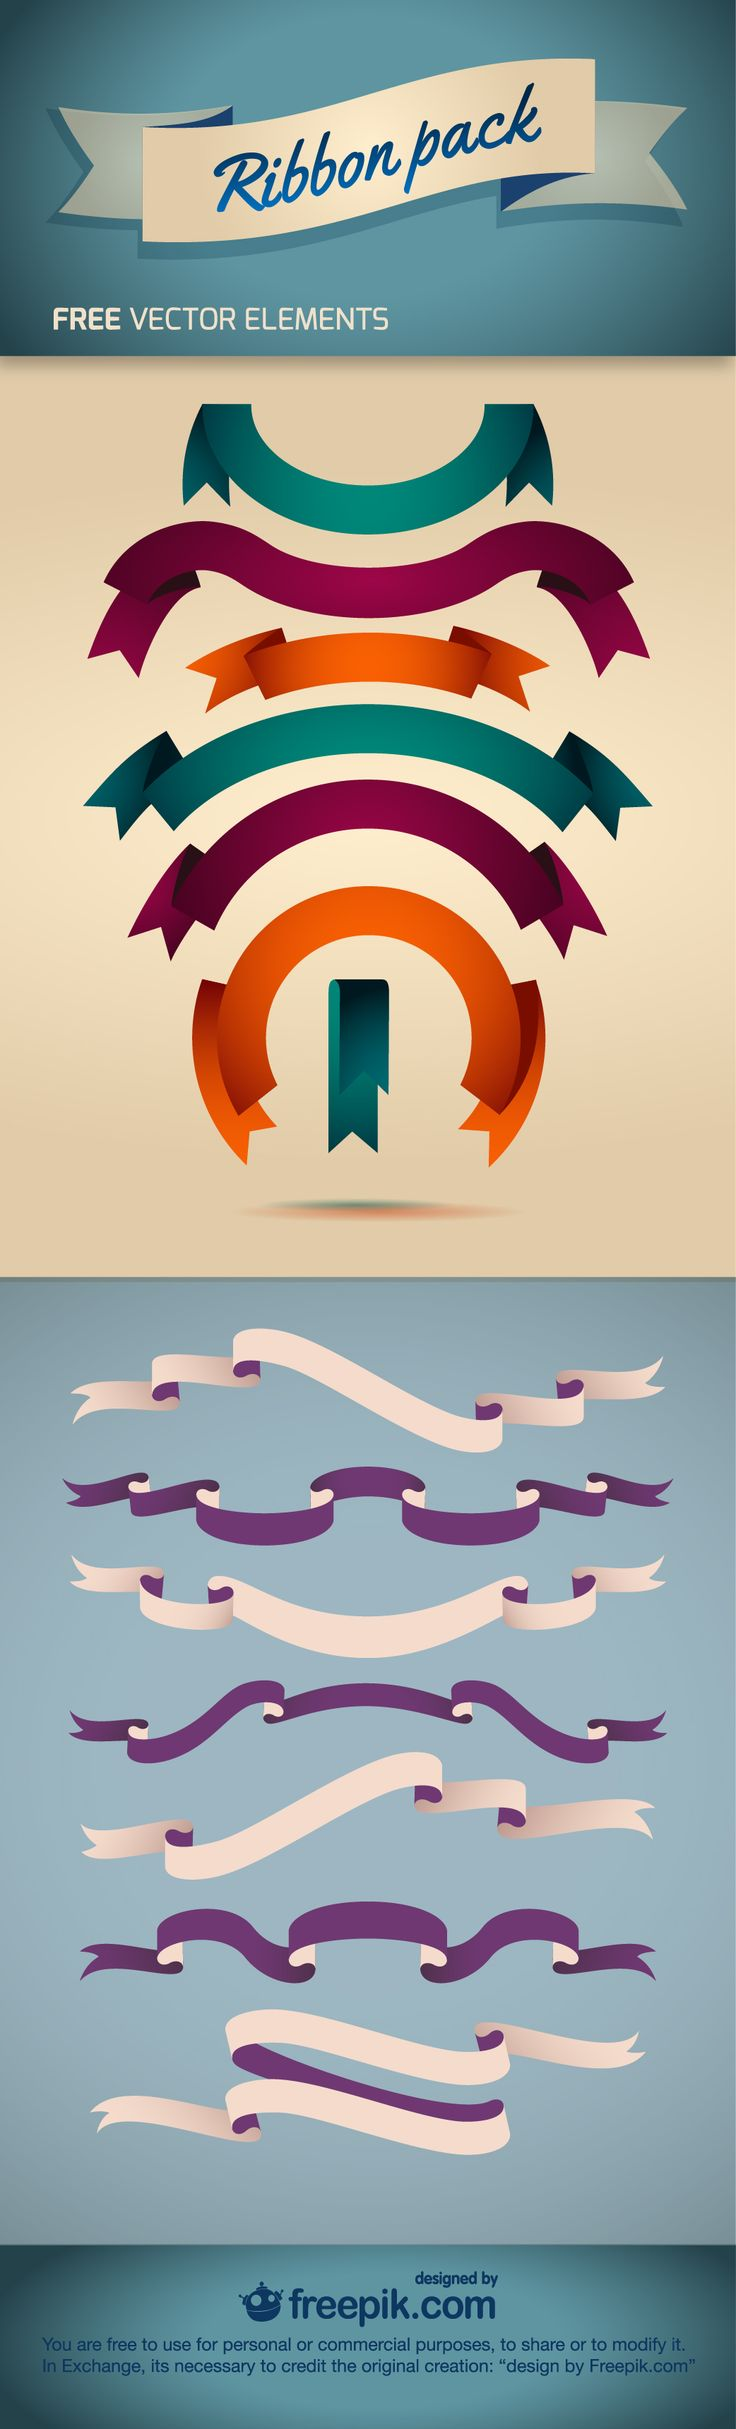 Best Ideas About Ribbon Design On Pinterest Banner Vector Luxury Branding And Info Graphic Design